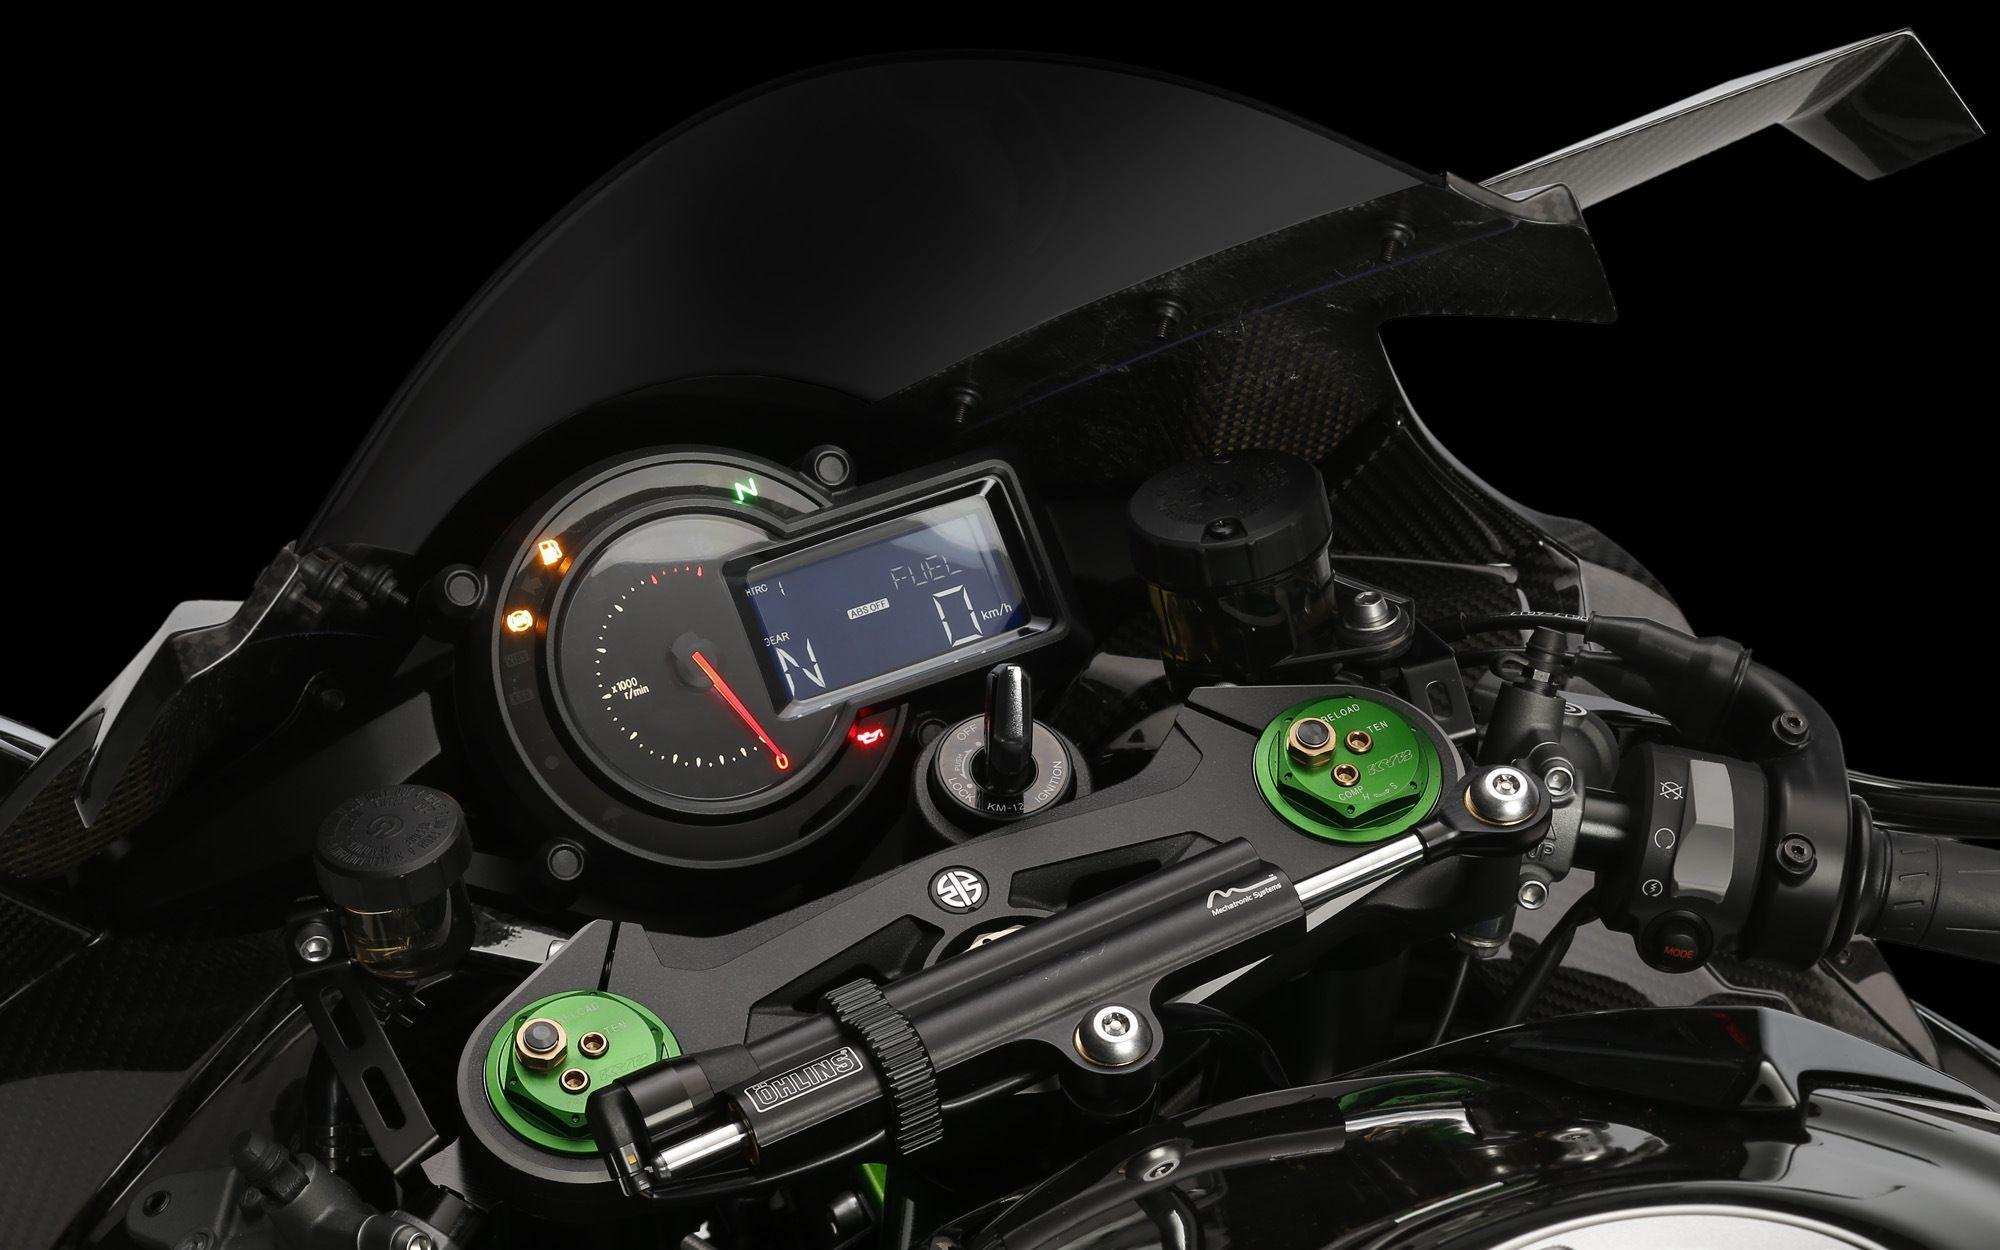 Kawasaki Ninja H2R Dashboard Moto HD Wallpaper